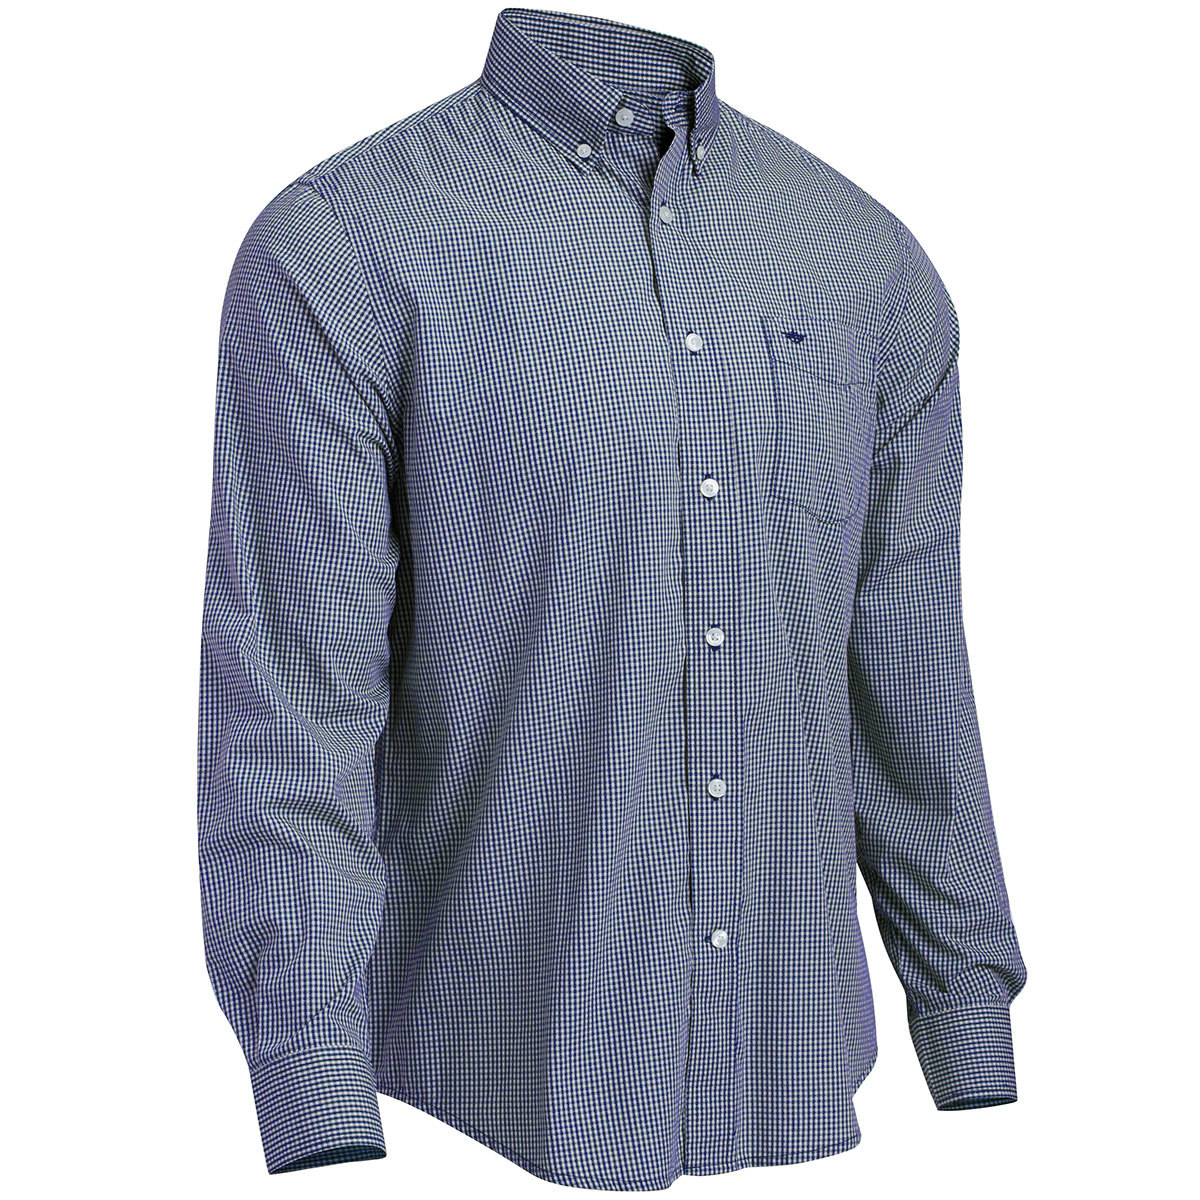 Dockers Men's Long-Sleeve Micro Check Shirt - Blue, M